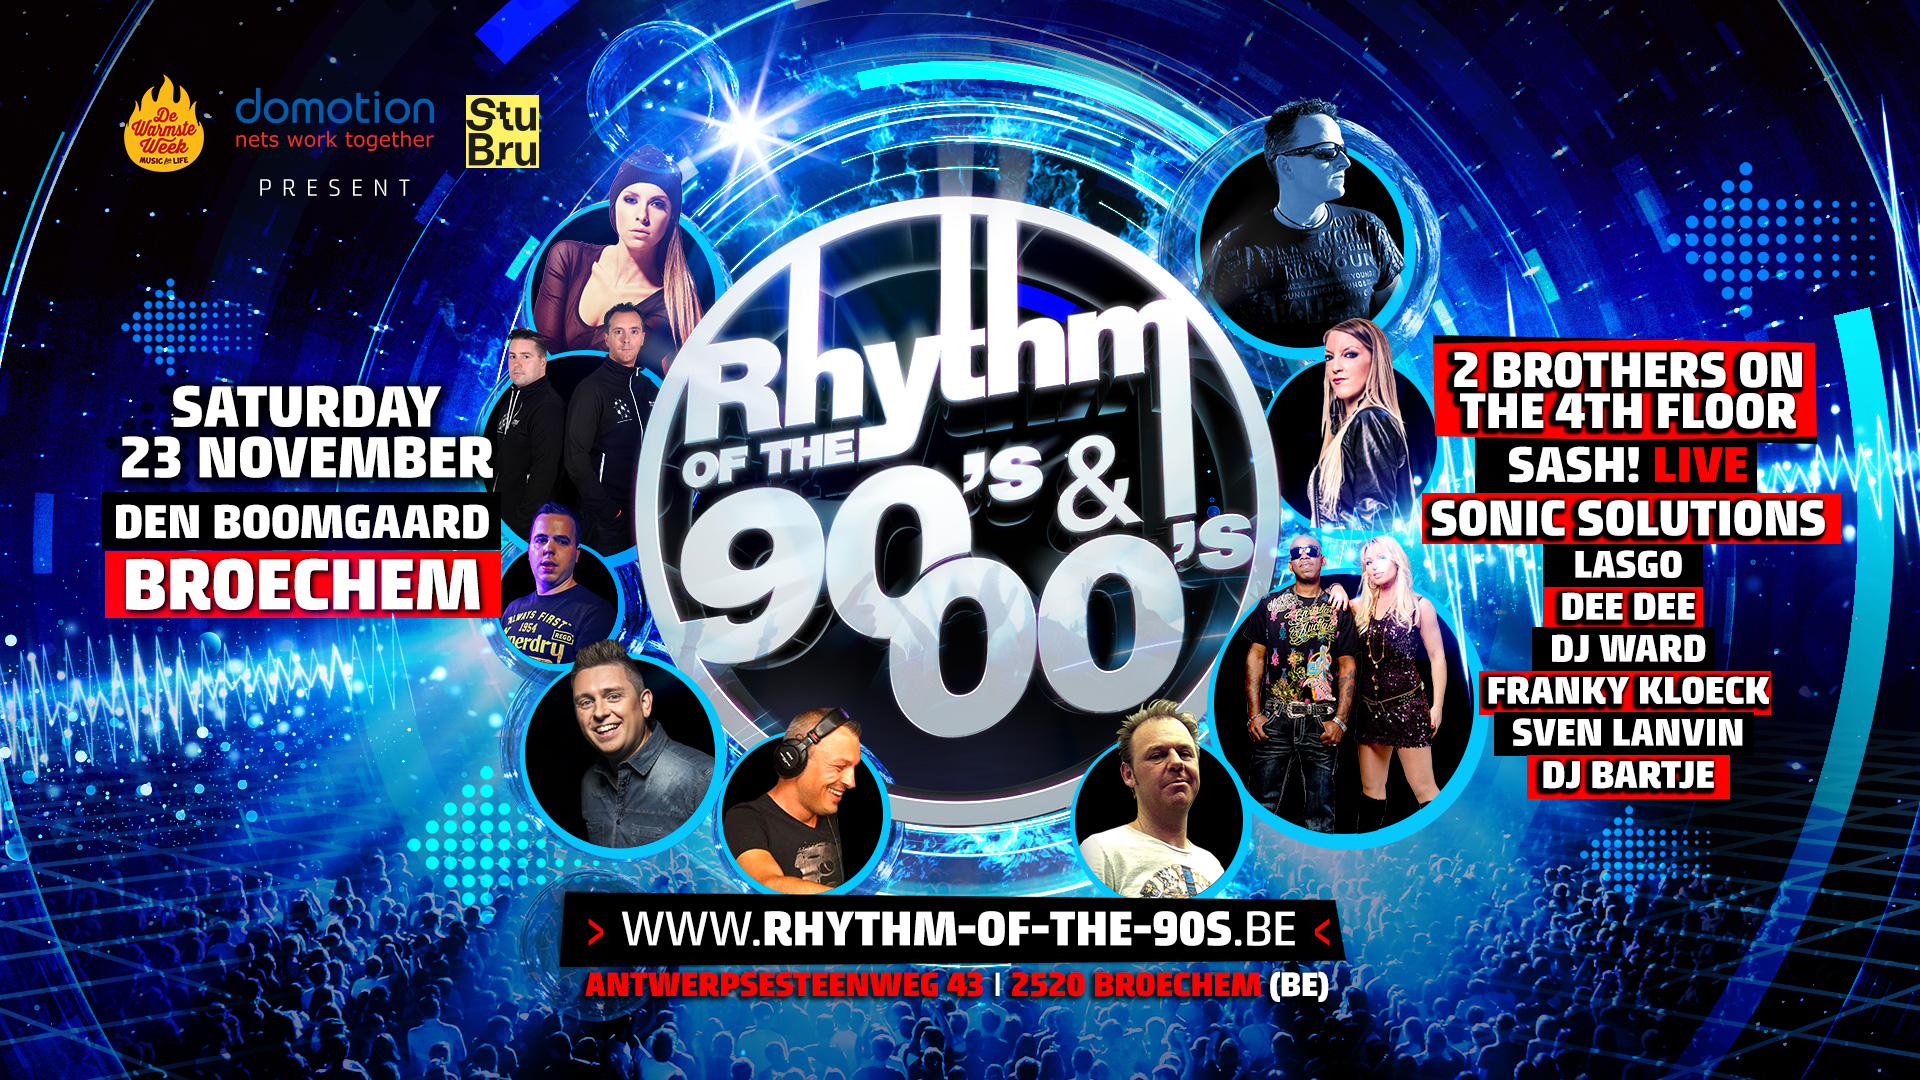 Rhythm of the 90's & 00's affiche op 23/11/2019